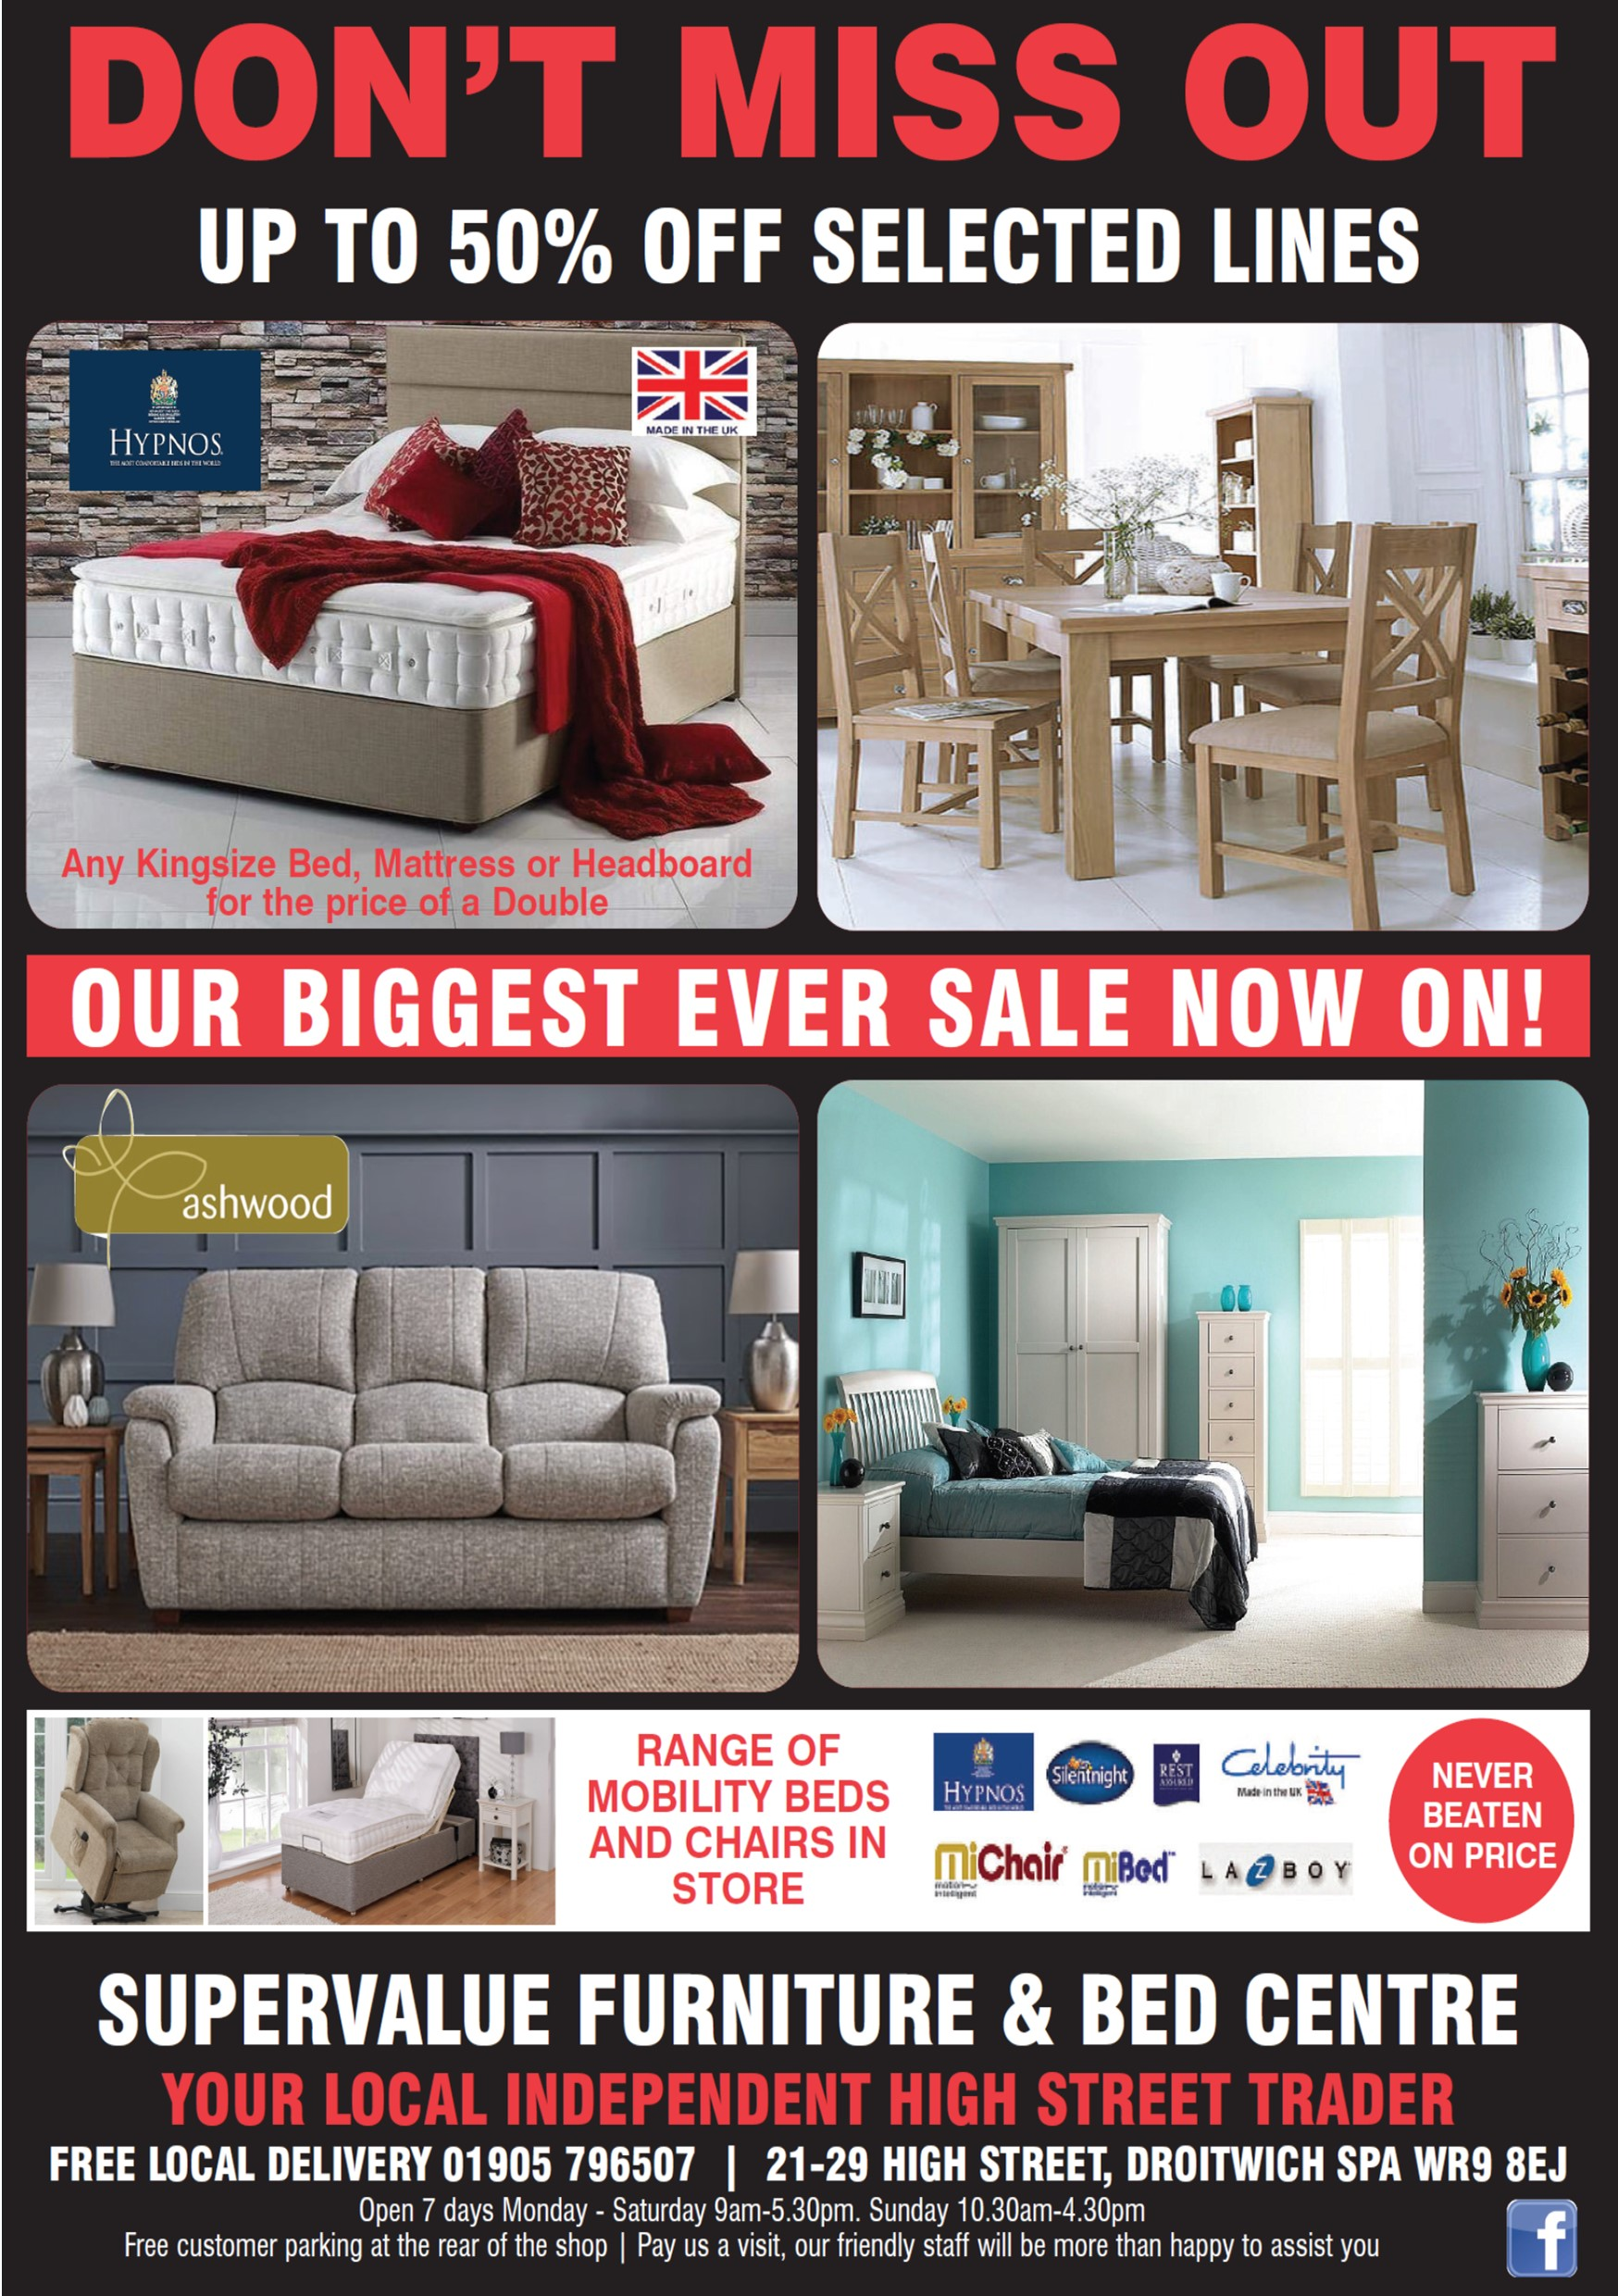 Super Value Furniture Droitwich - Try us 1st Local Traders